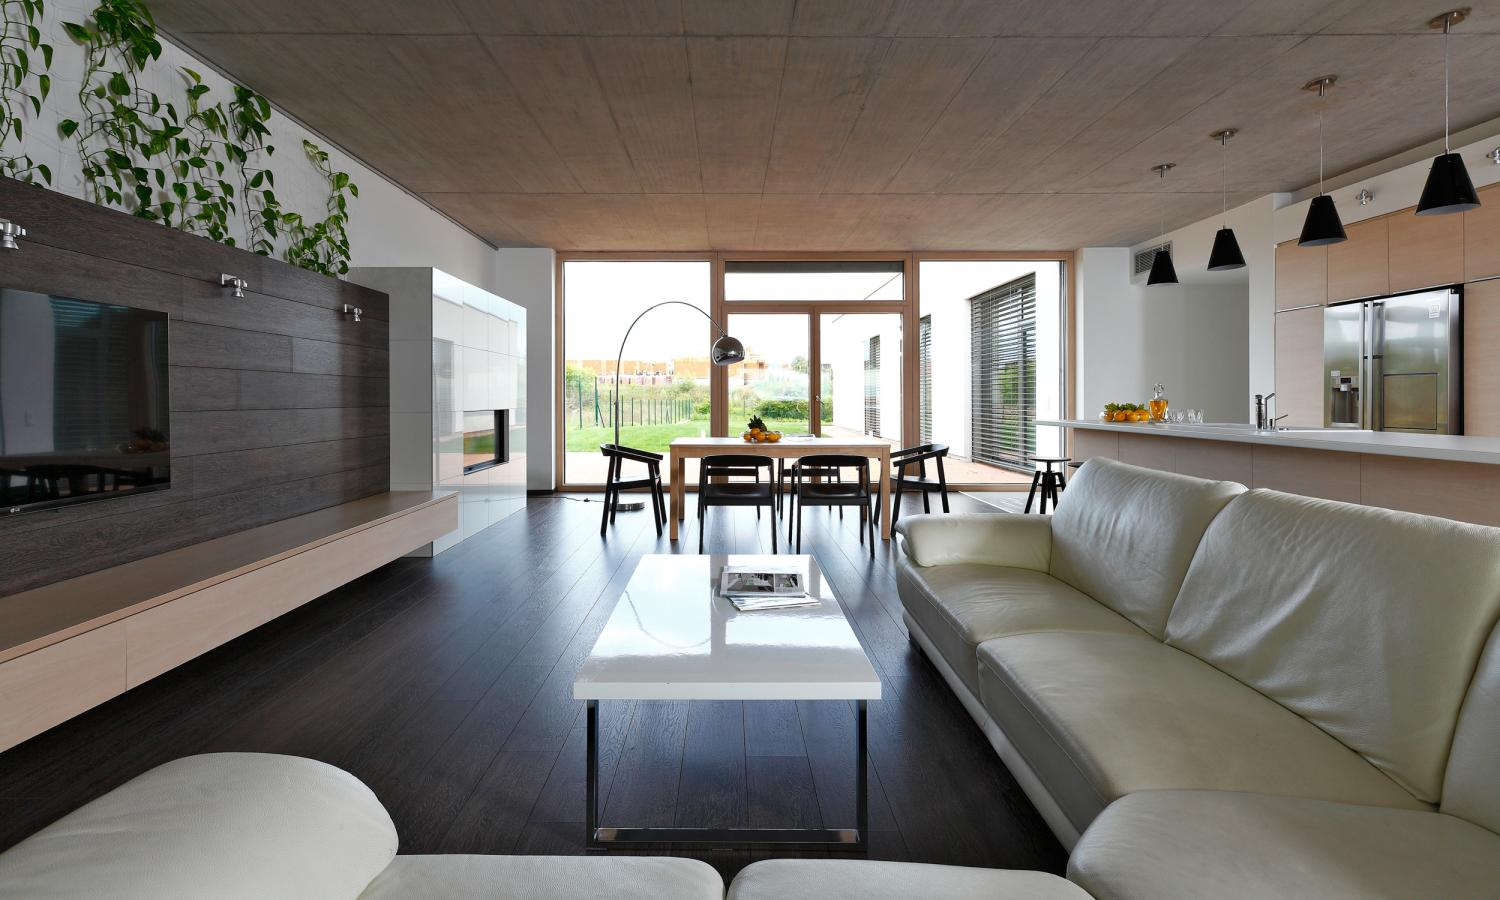 Open Living Room Design Indoor Plants Inspiration For Your Apartment Decorating Idea